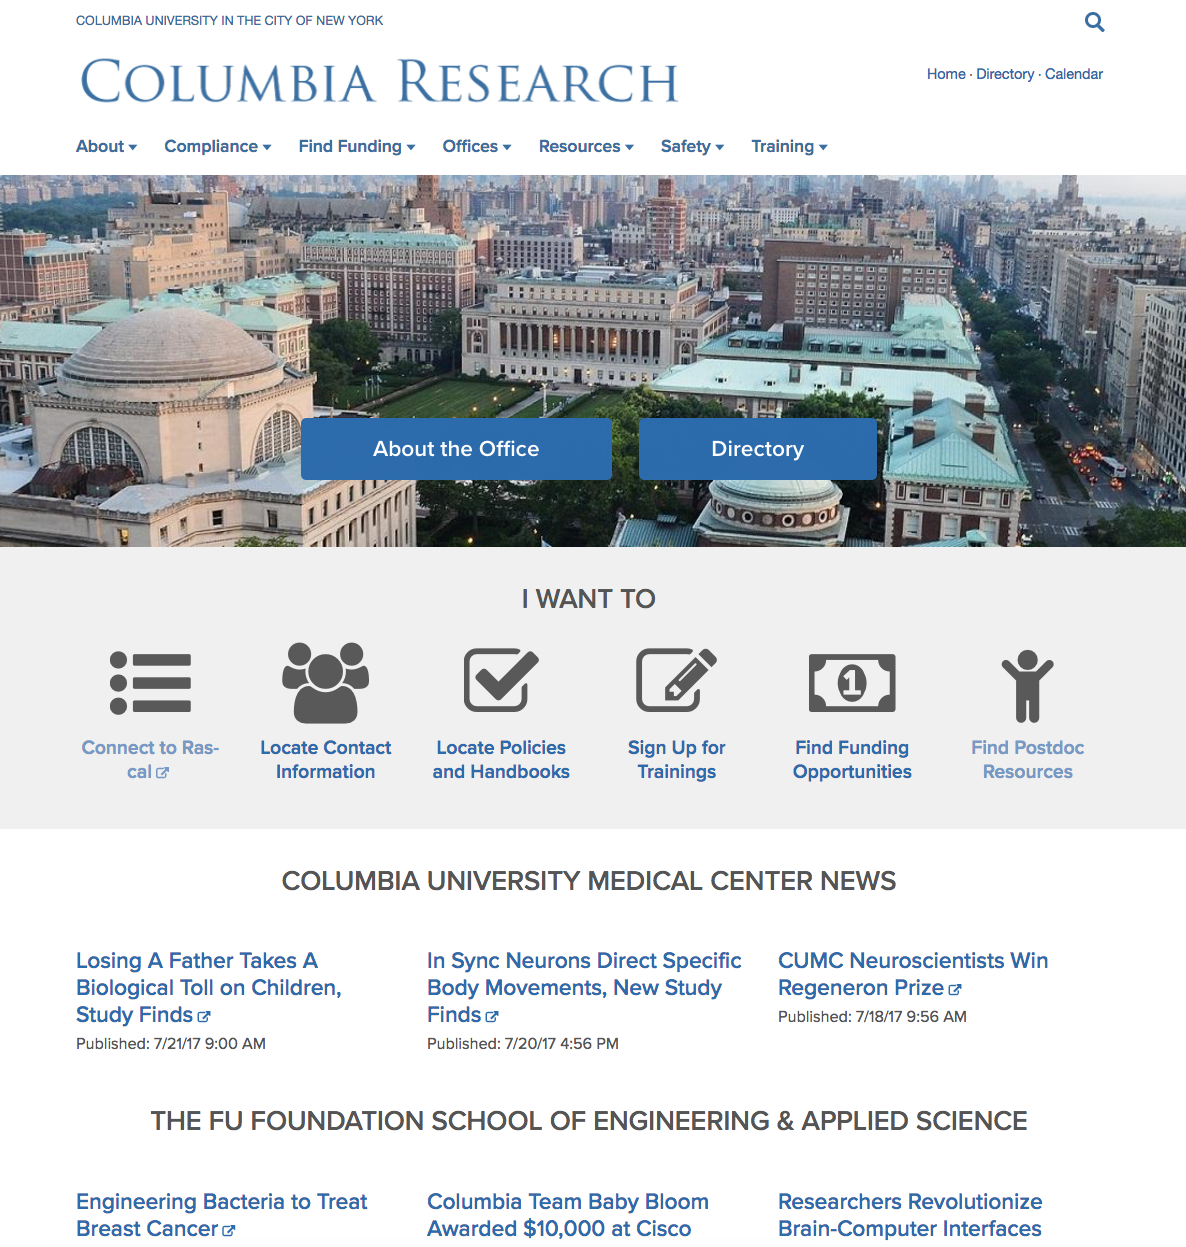 Columbia Research homepage screenshot